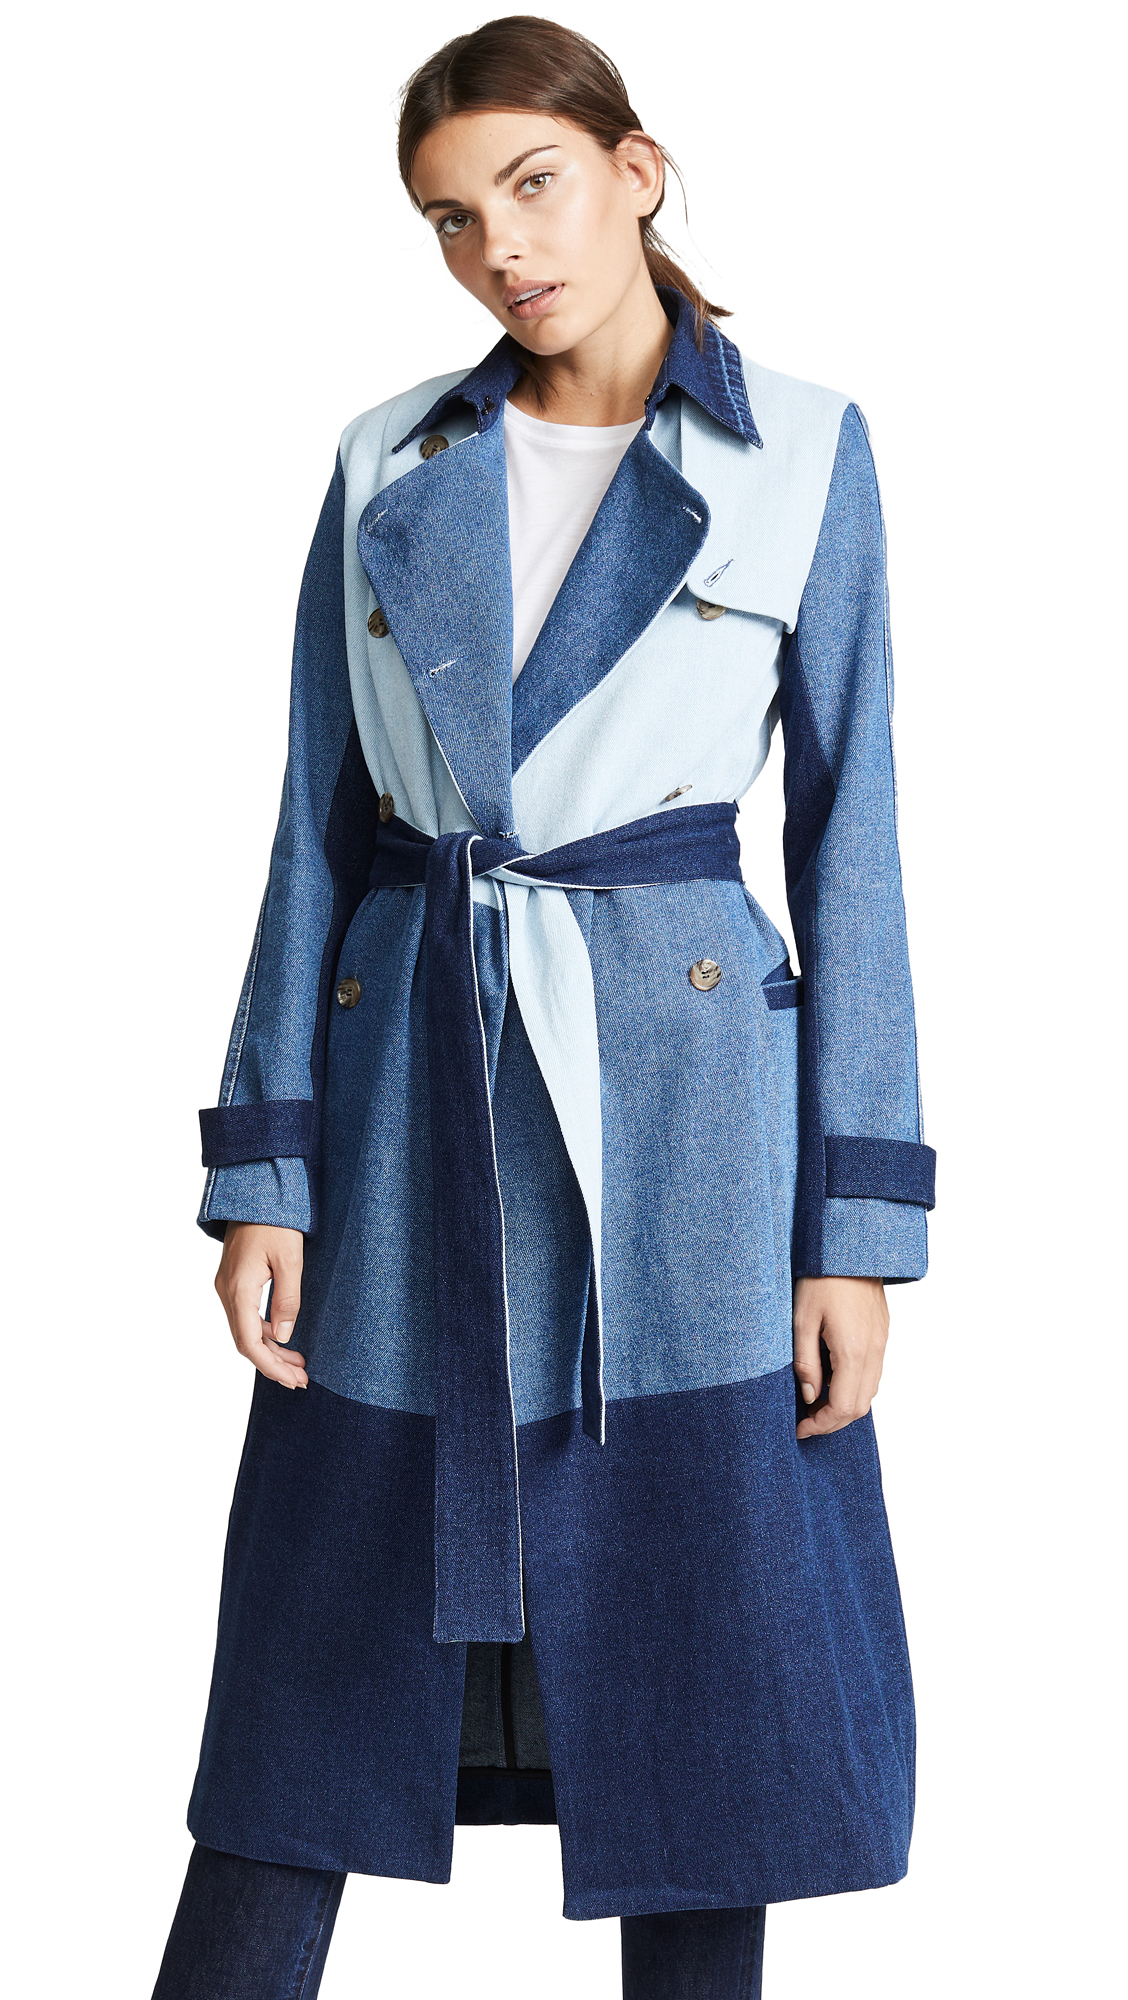 Ksenia Schnaider Denim Patchwork Coat In Mixed Blue